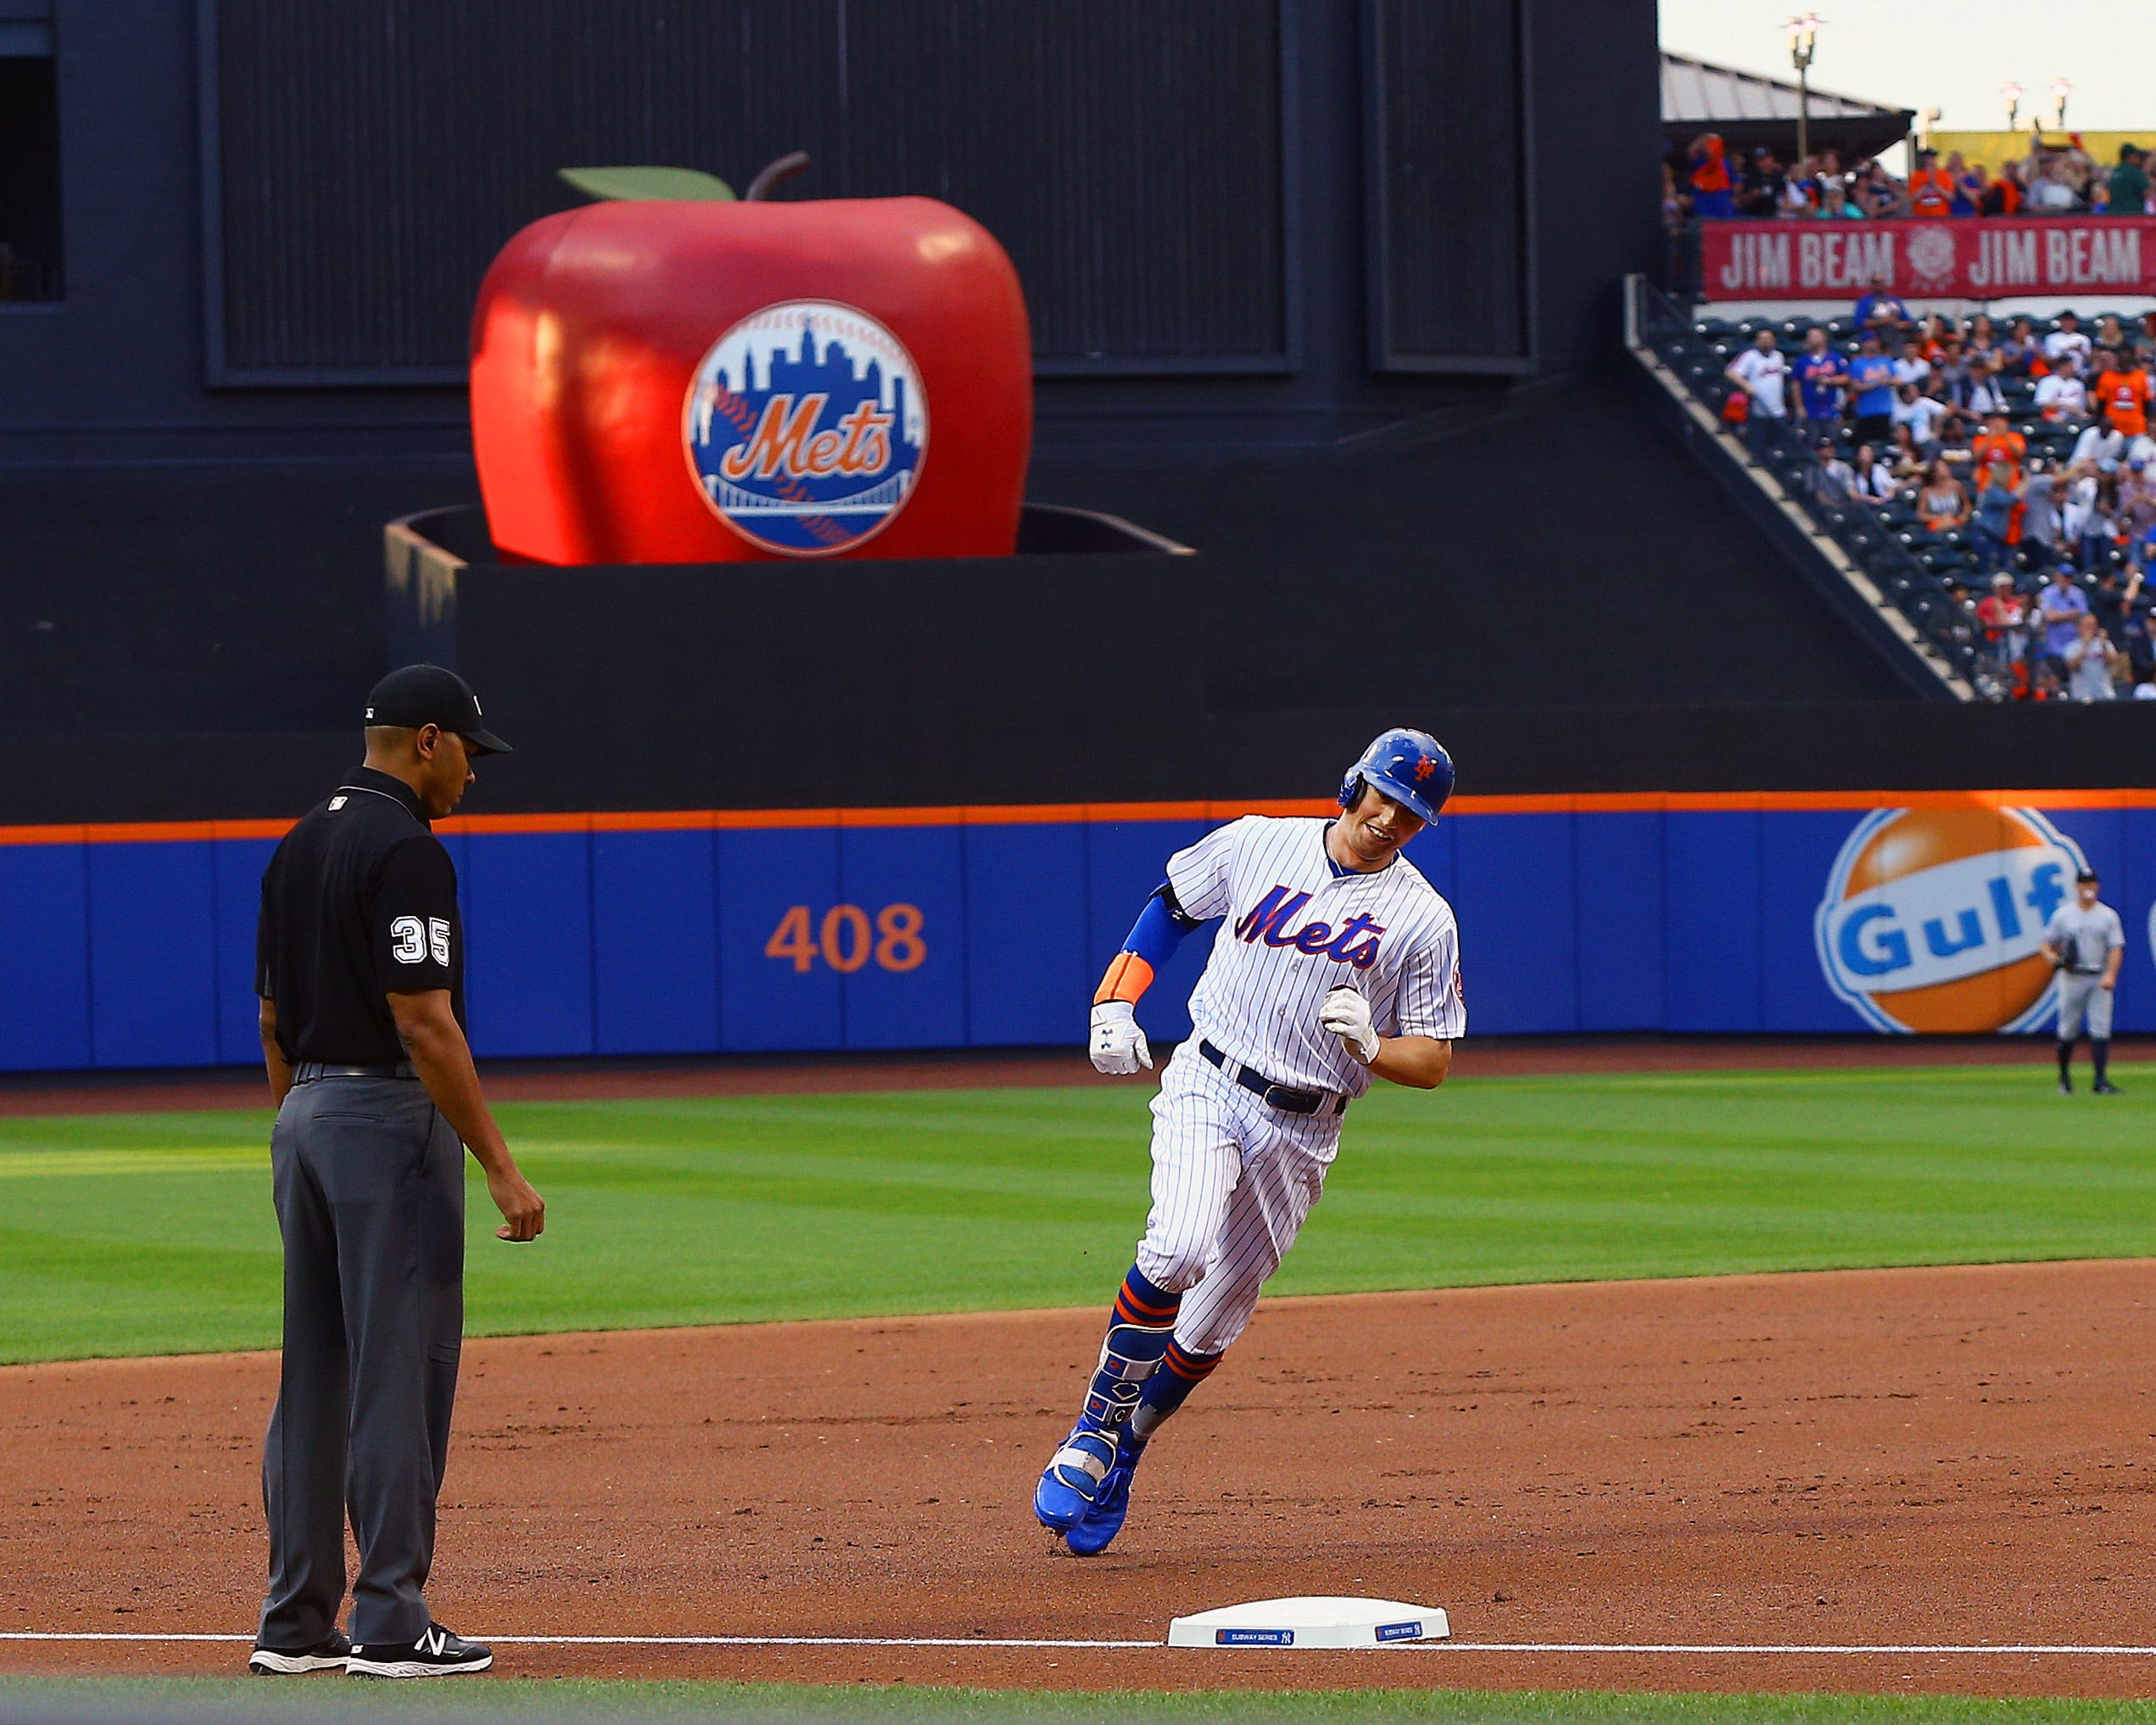 photograph regarding Mets Printable Schedule called NY Mets 2019 agenda: Open up at Nationals, finish at Citi